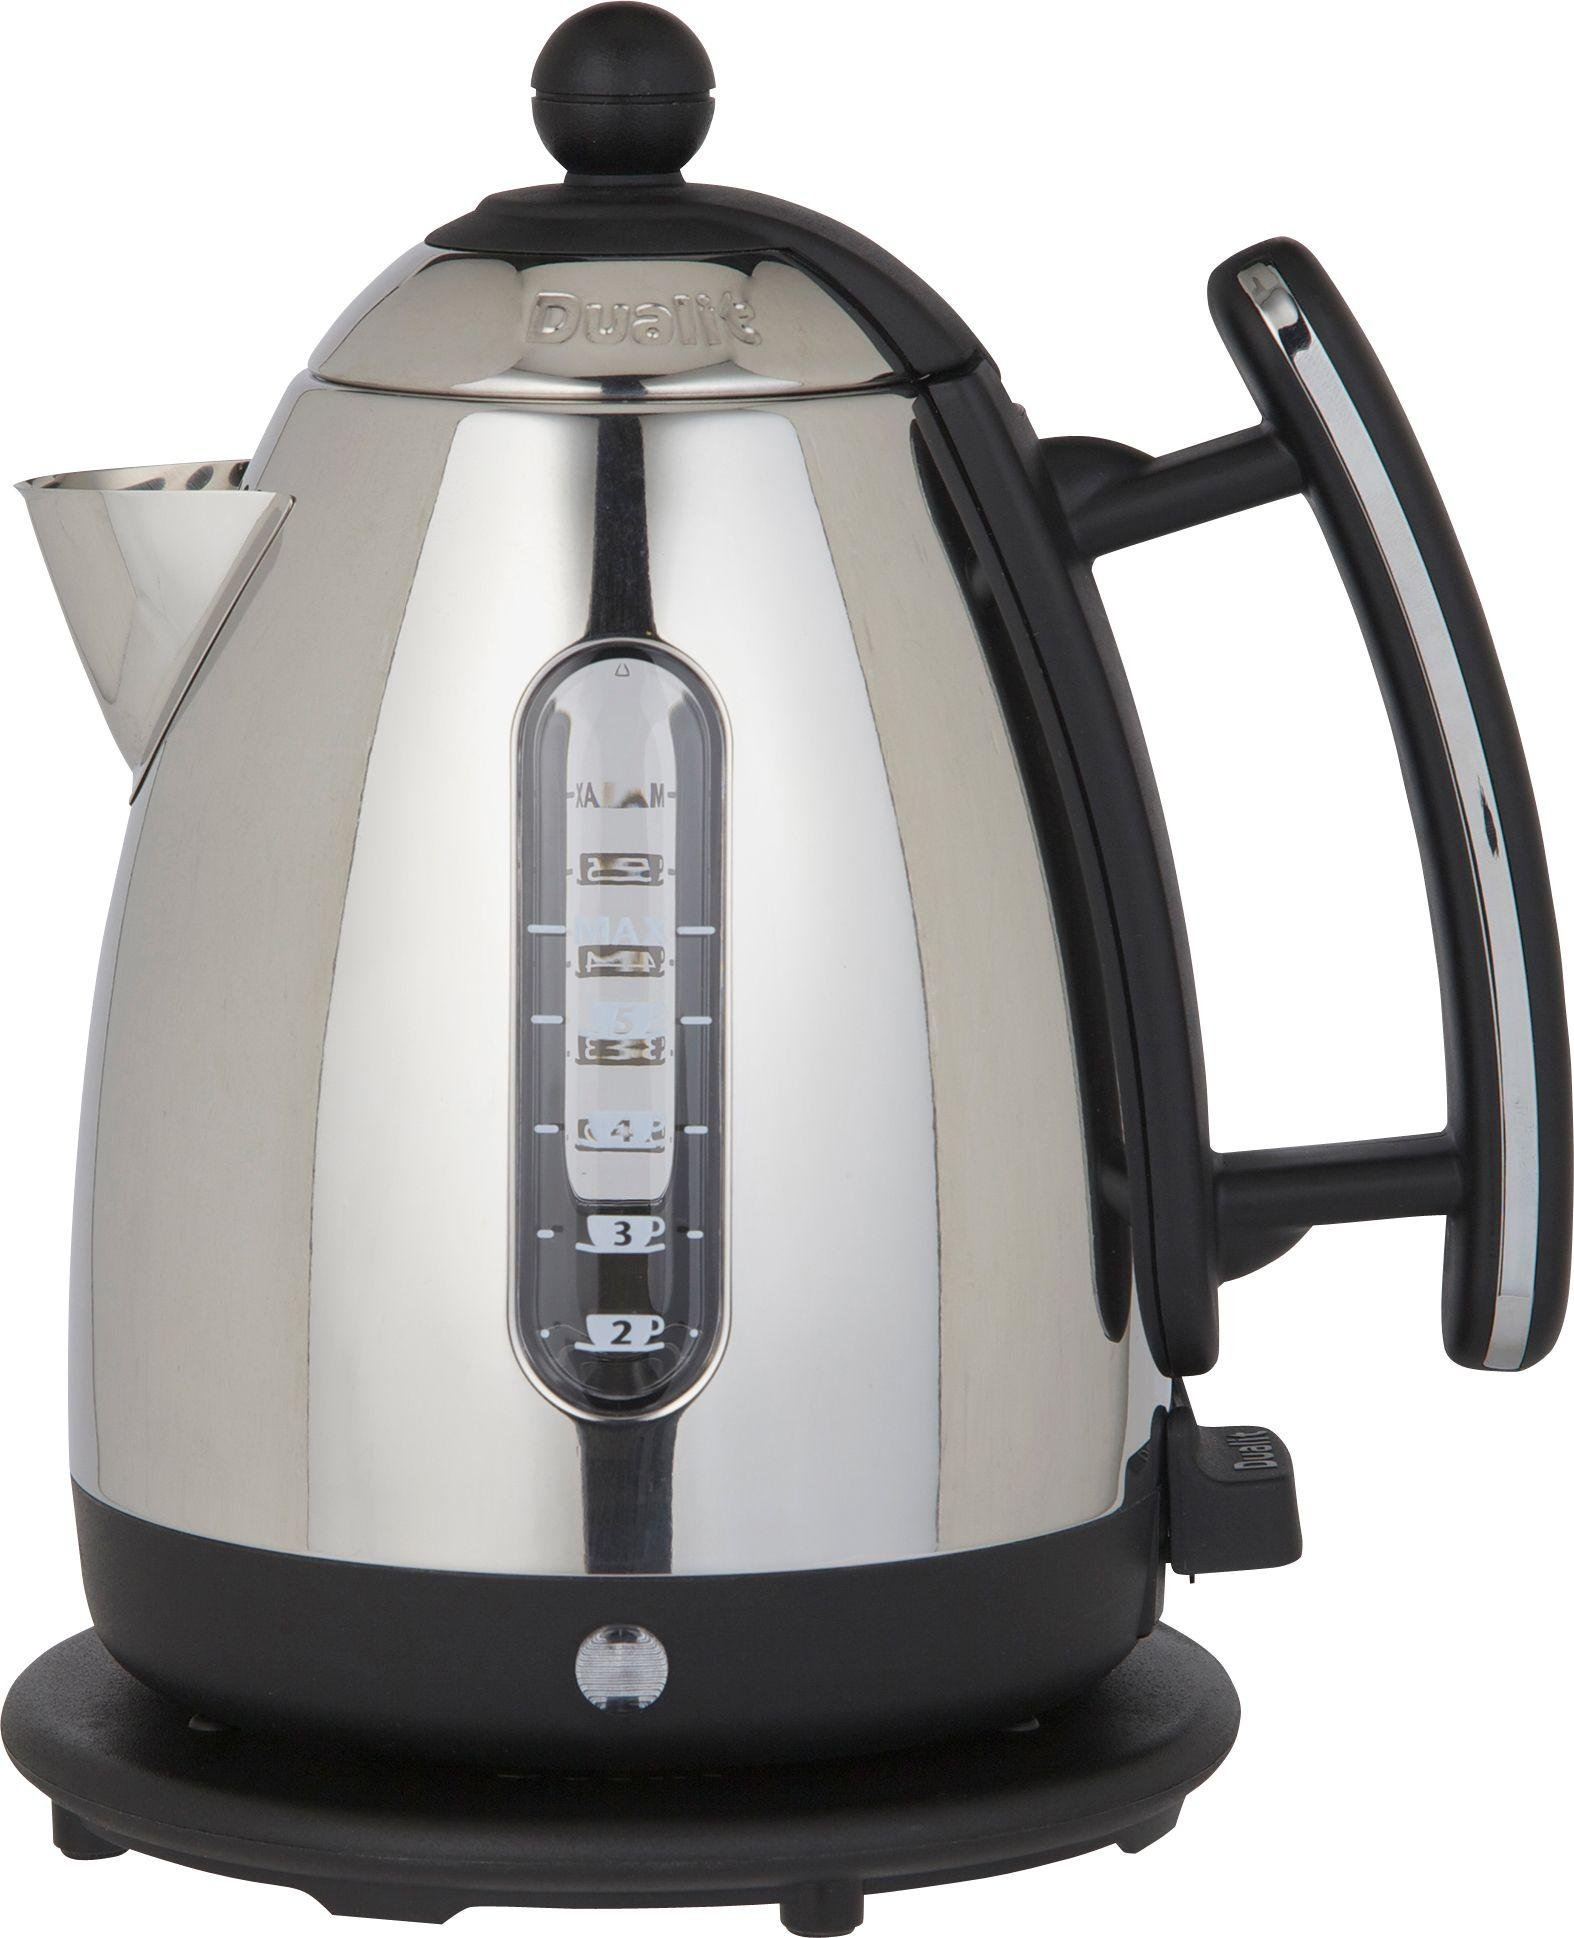 Image of Dualit - Kettle - 72400 JKT3 Stainless Steel And Black Jug